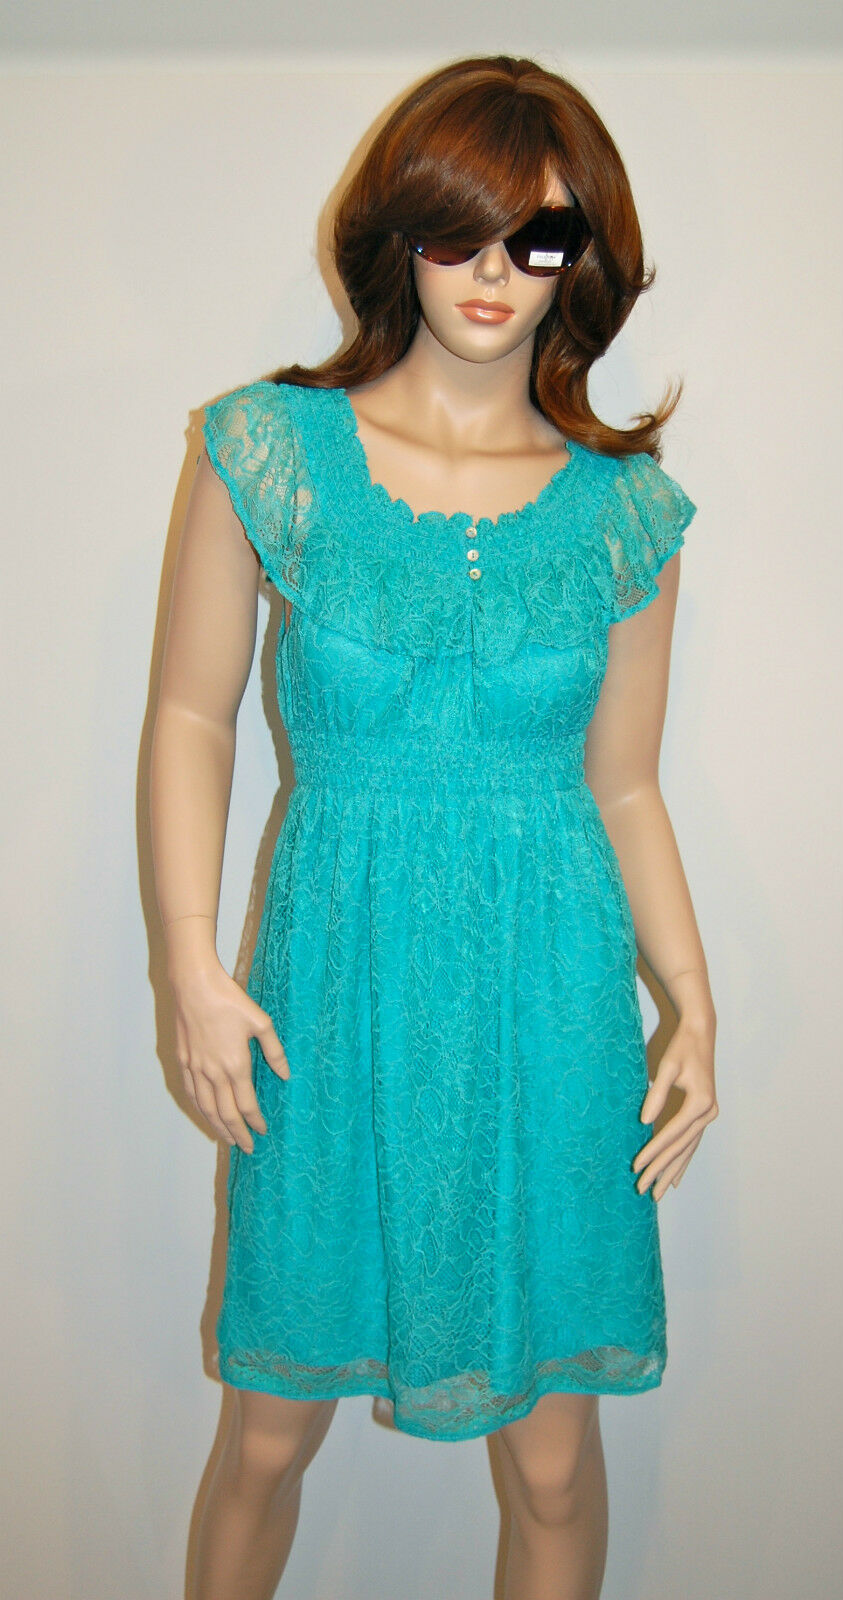 New  Sophie Max Serena Turquoise Blau Lace Sundress Dress Sleeveless S Small